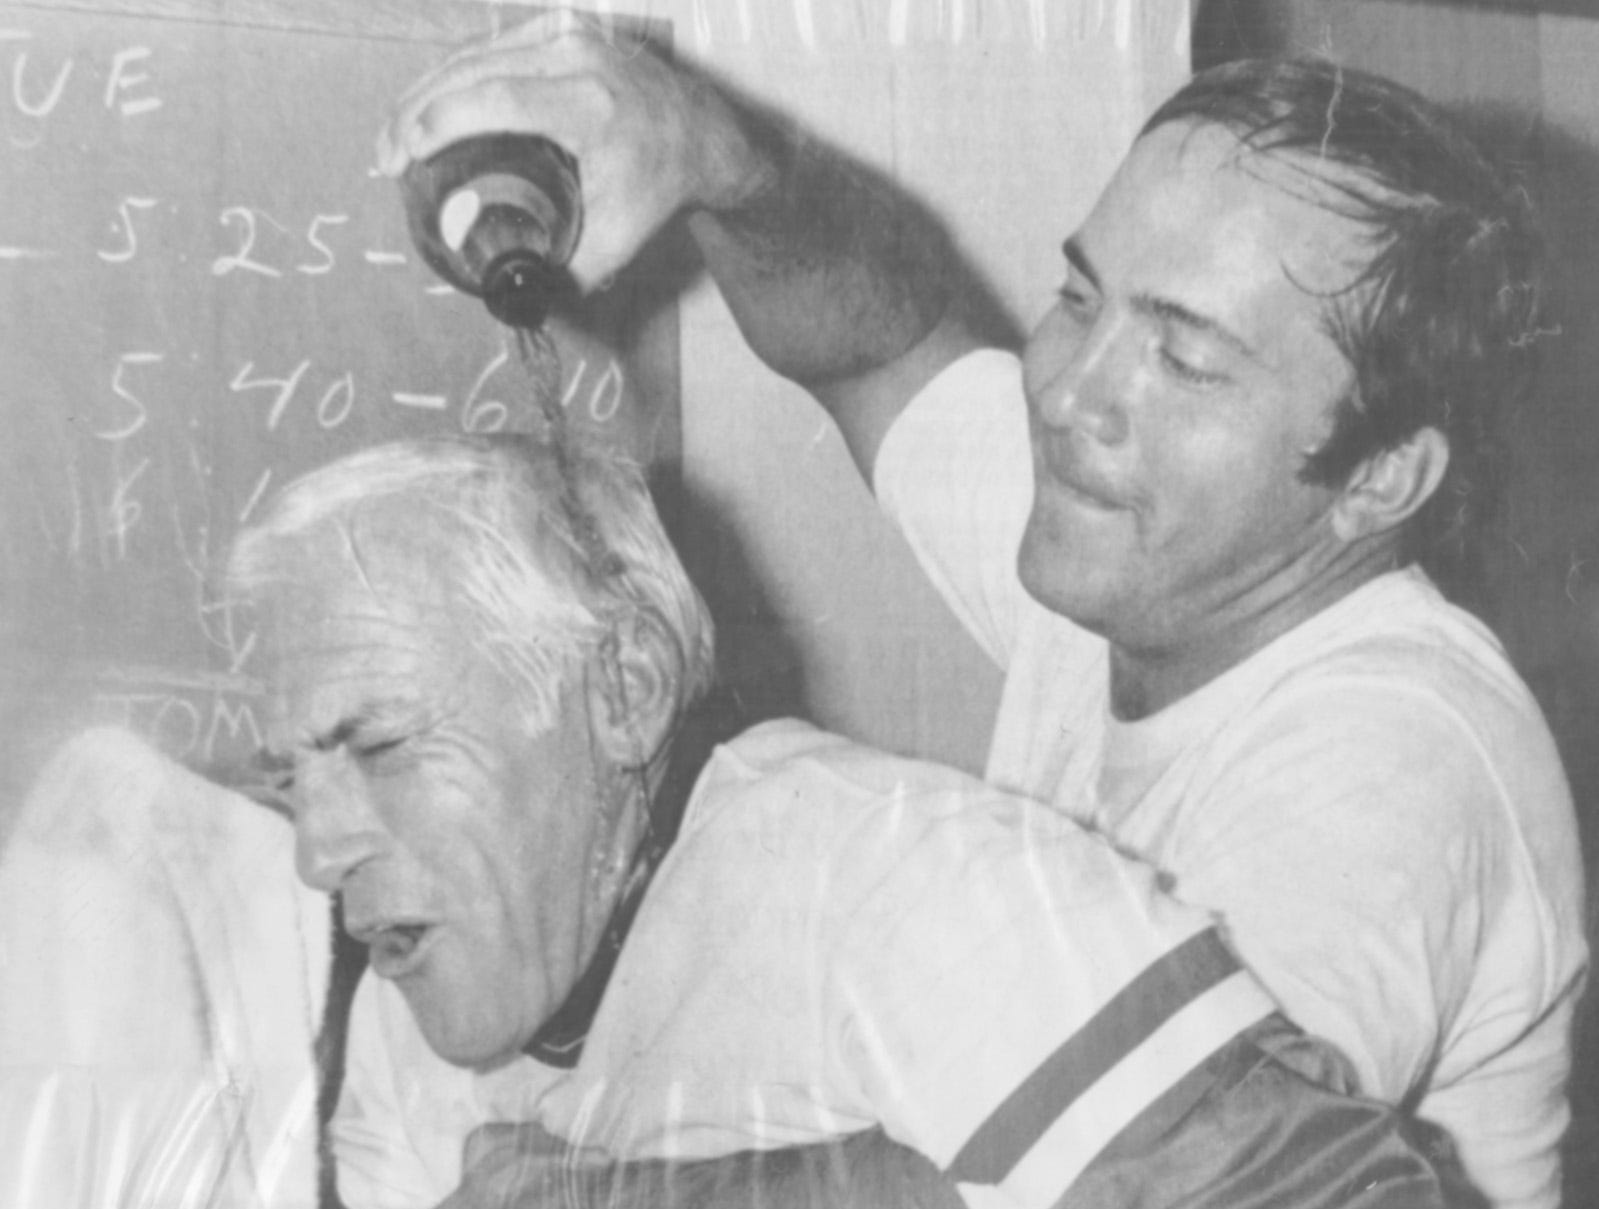 Cincinnati Reds catcher Johnny Bench, right, pours champagne over Reds manager Spary Anderson during the celebration in the clubhouse after the Reds won the National League Western Division title in 1976.